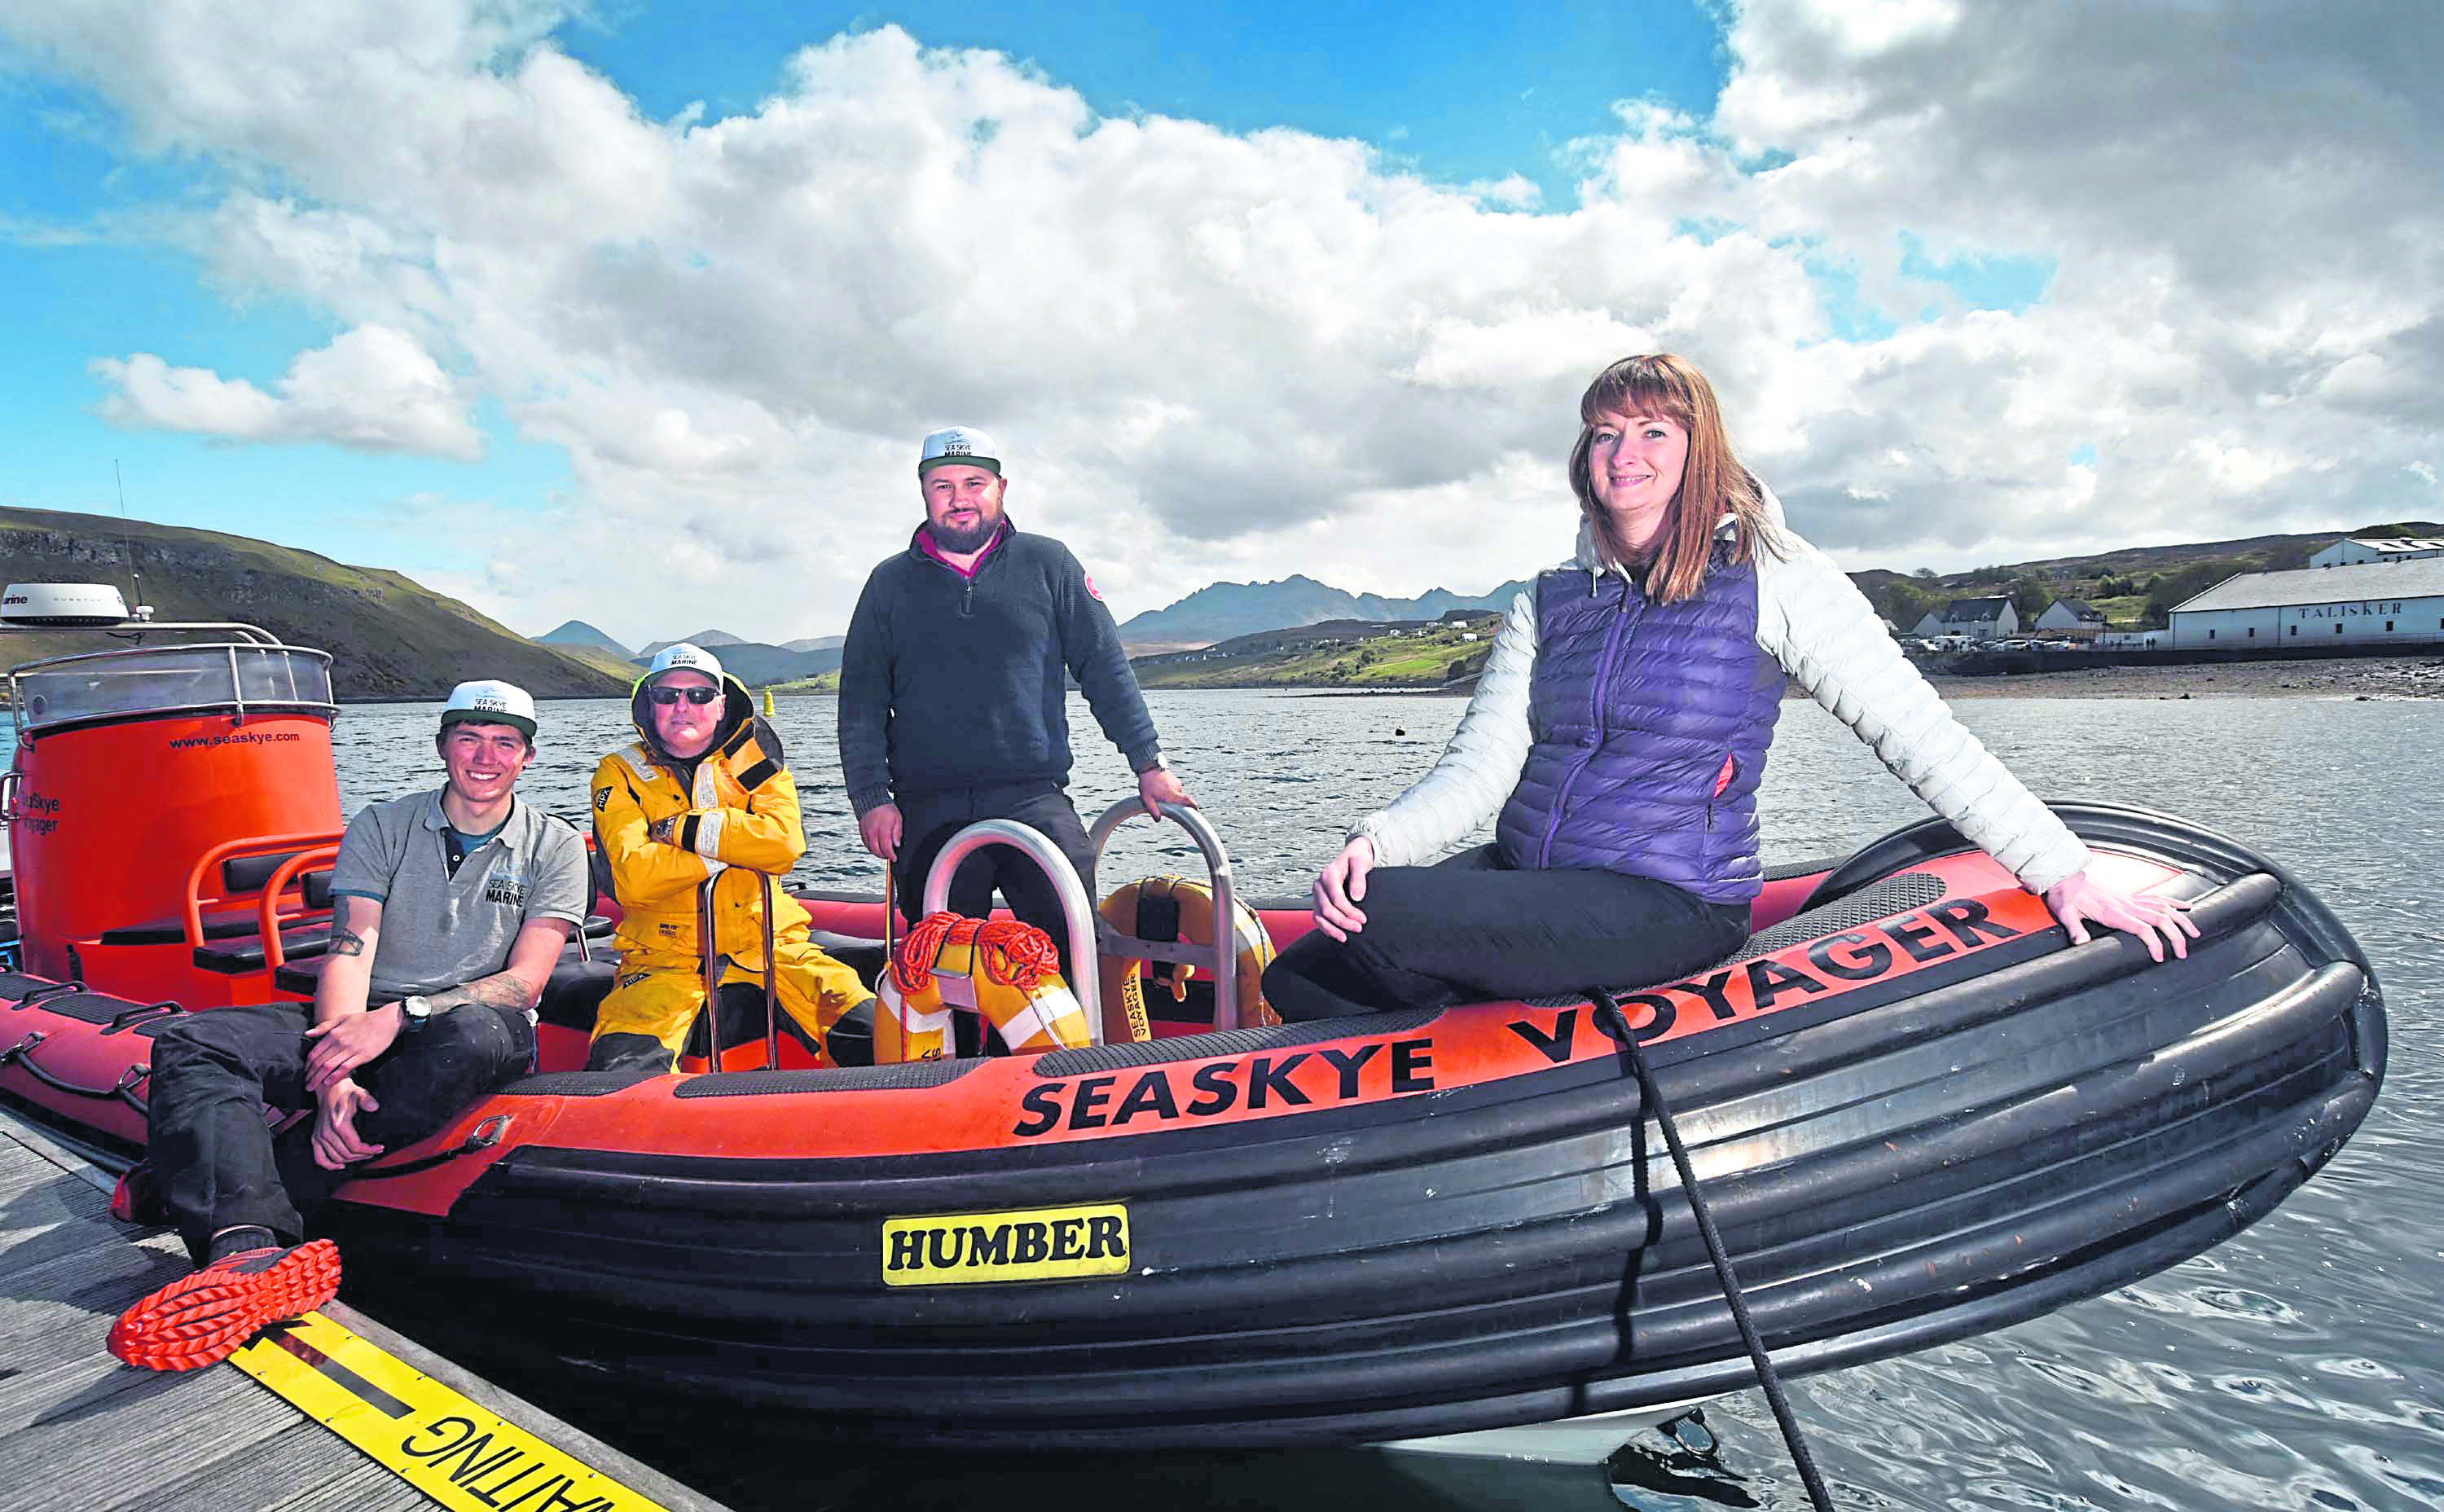 Seaskye's 11-metre vessel (pictured) will be upgraded to a 13- metre vessel, with HIE support. L-R: Jordan Young, Mark Coombe and Kenny MacKinnon of Seaskye Marine, with Eilidh Ross of HIE. Picture by Iain Smith/HIE.